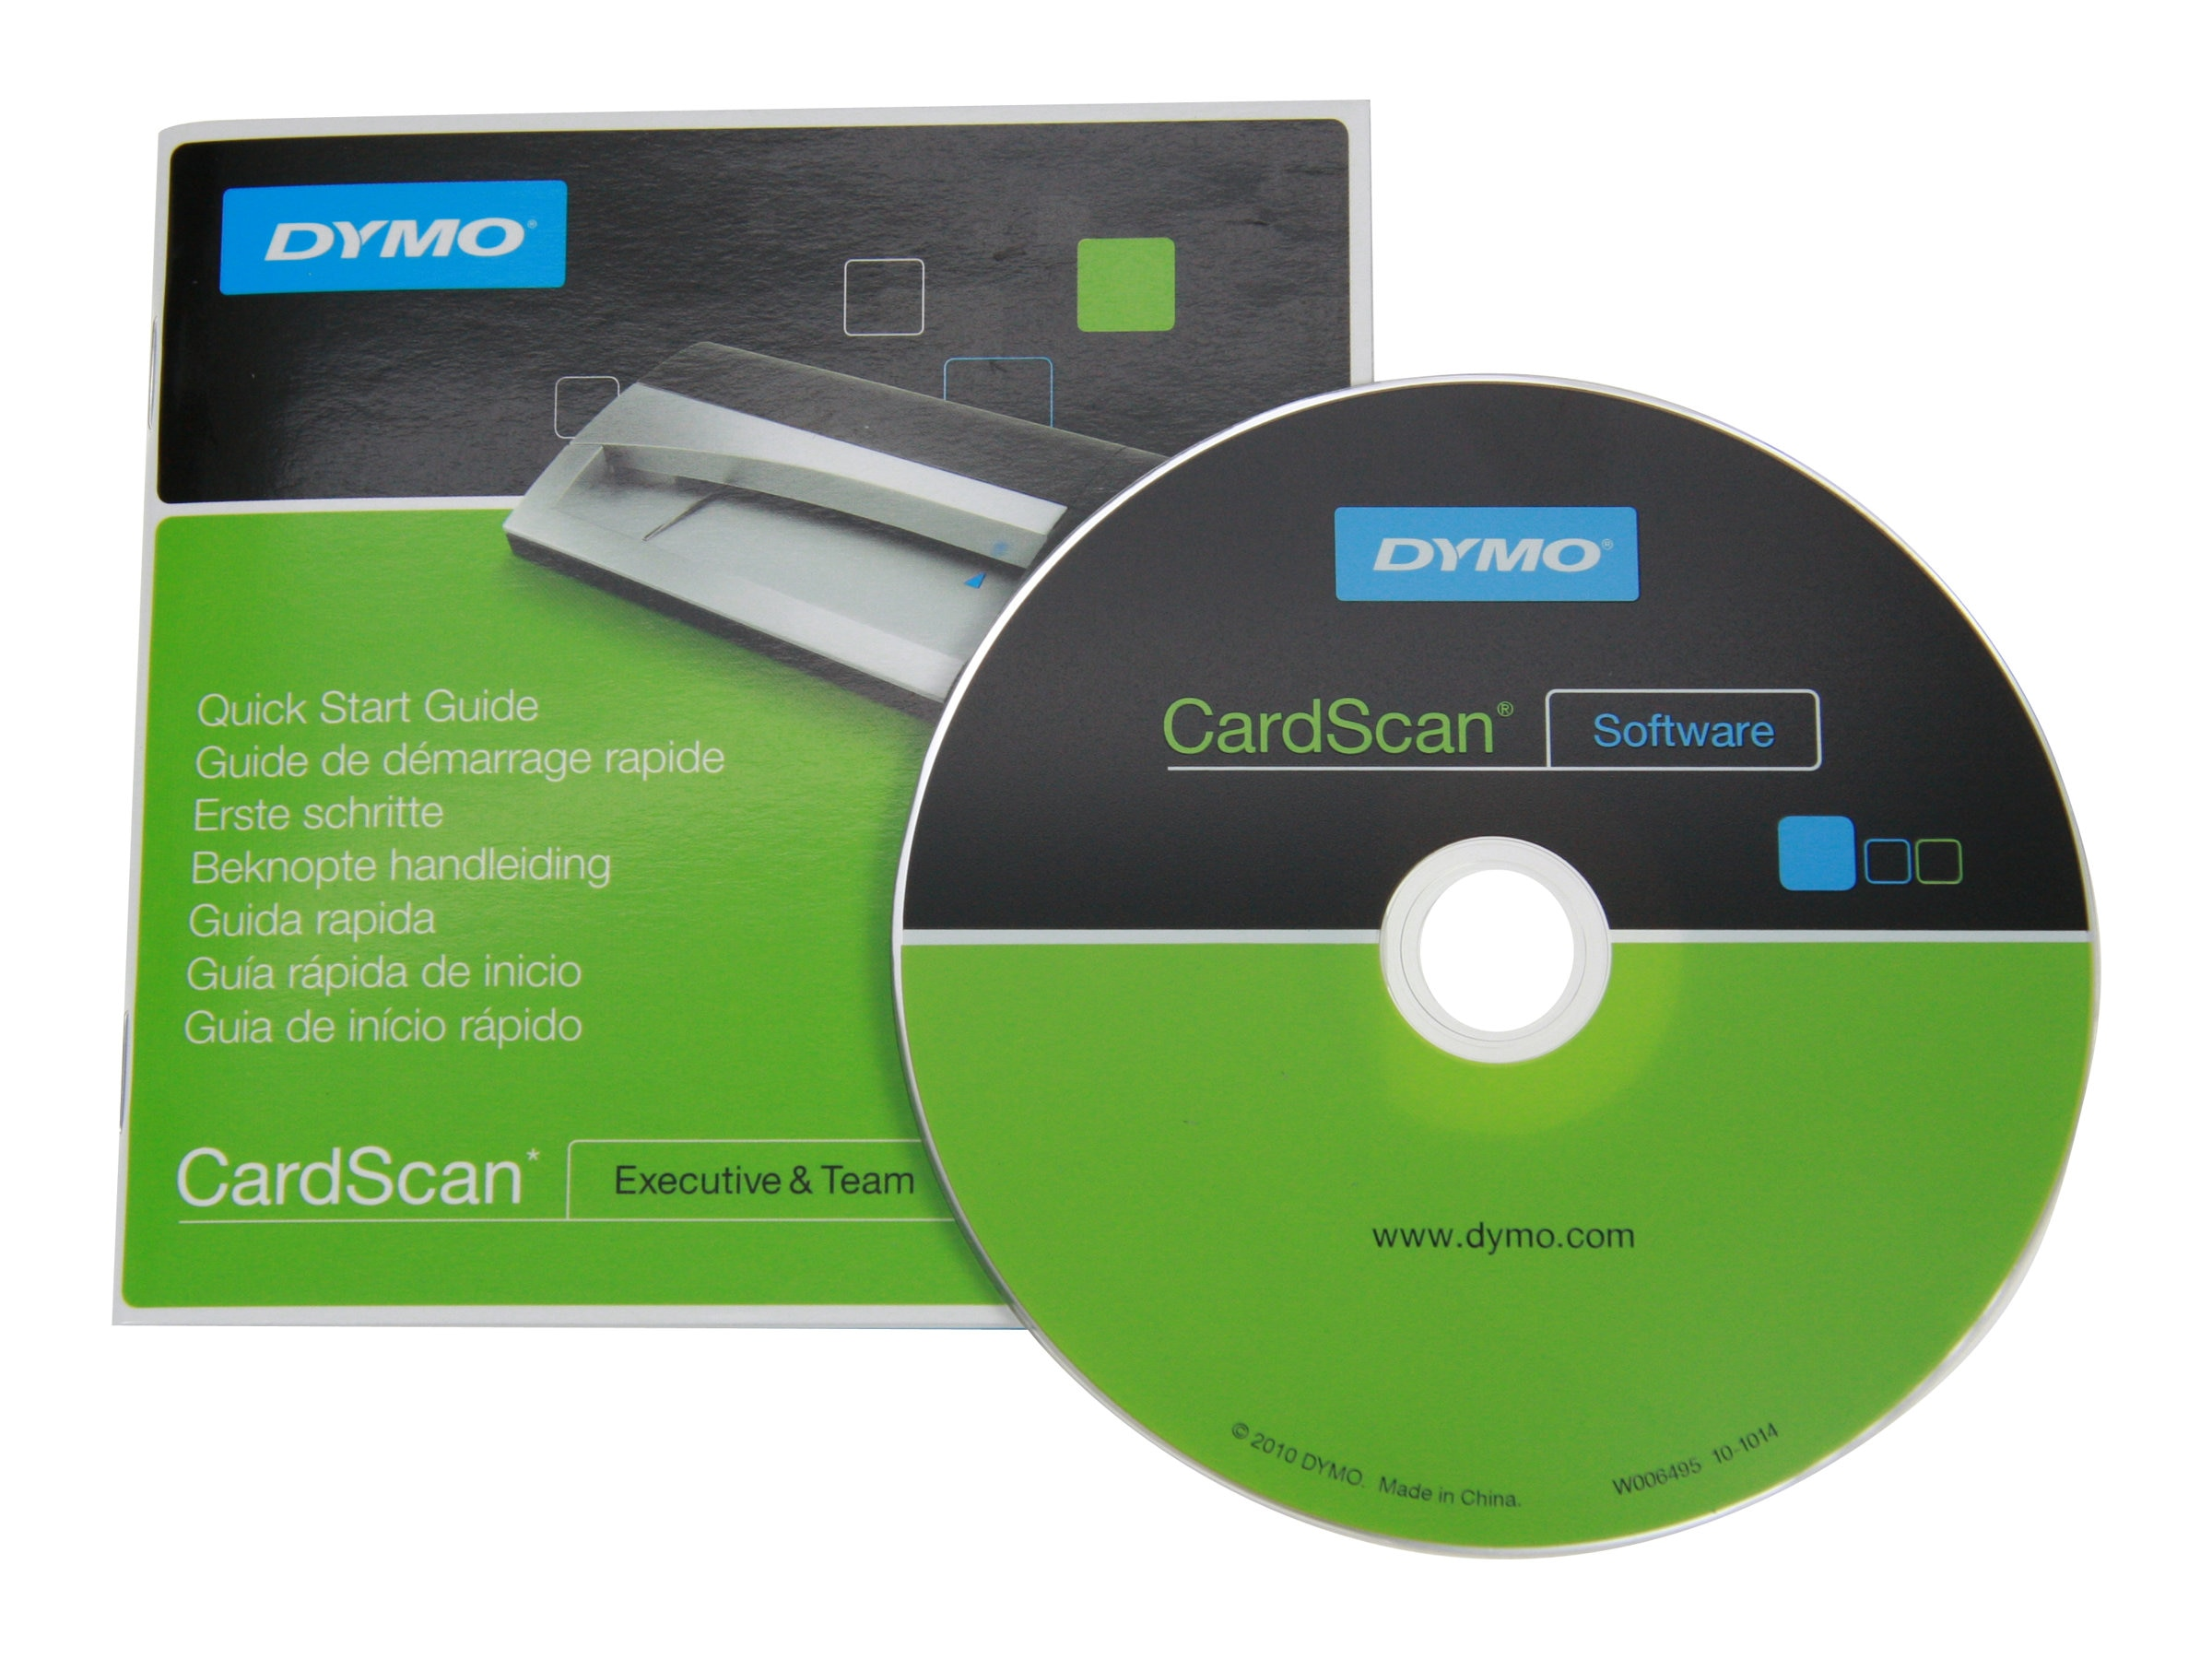 DYMO CardScan Team 9.0 5-user SW CD-ROM, 1806067, 14506168, Software - OCR & Scanner